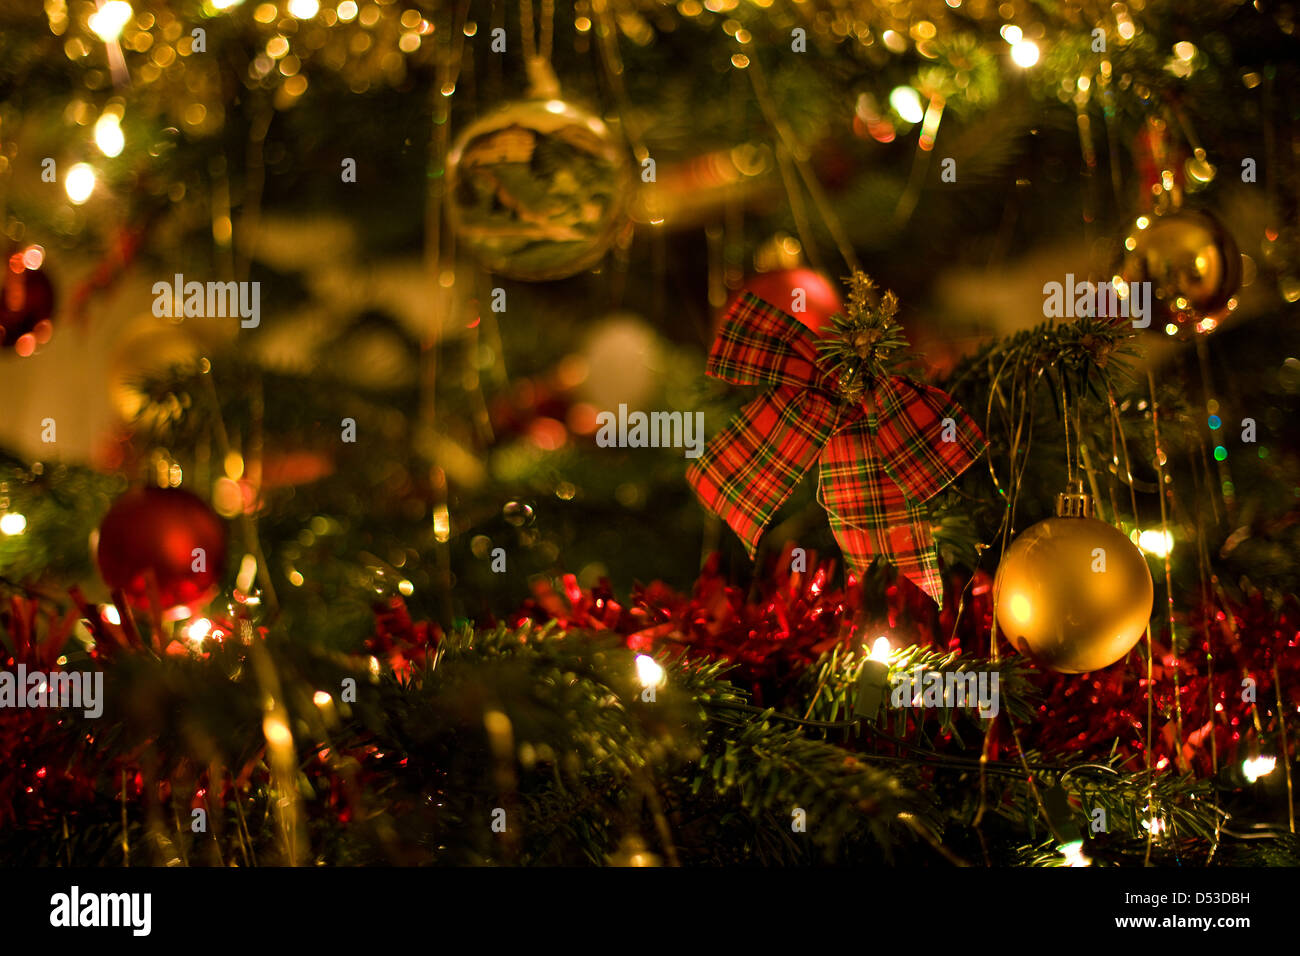 Scottish Christmas Tree Decorations Stock Photo: 54780757 - Alamy